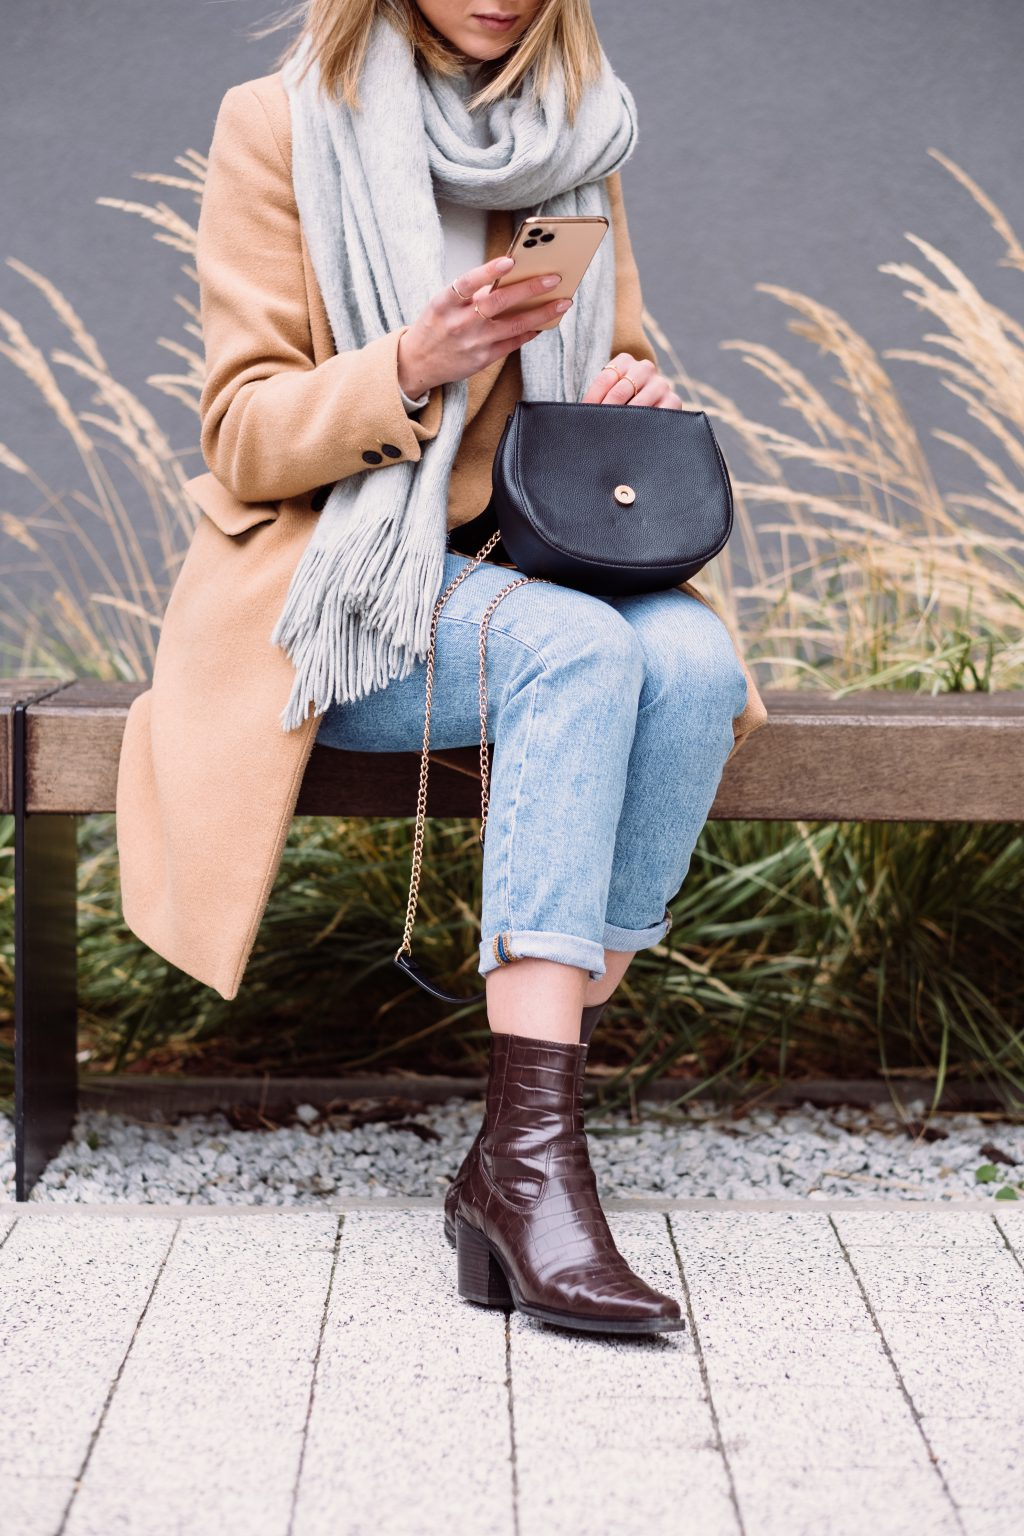 Female holding her phone and purse on an autumn day 2 - free stock photo